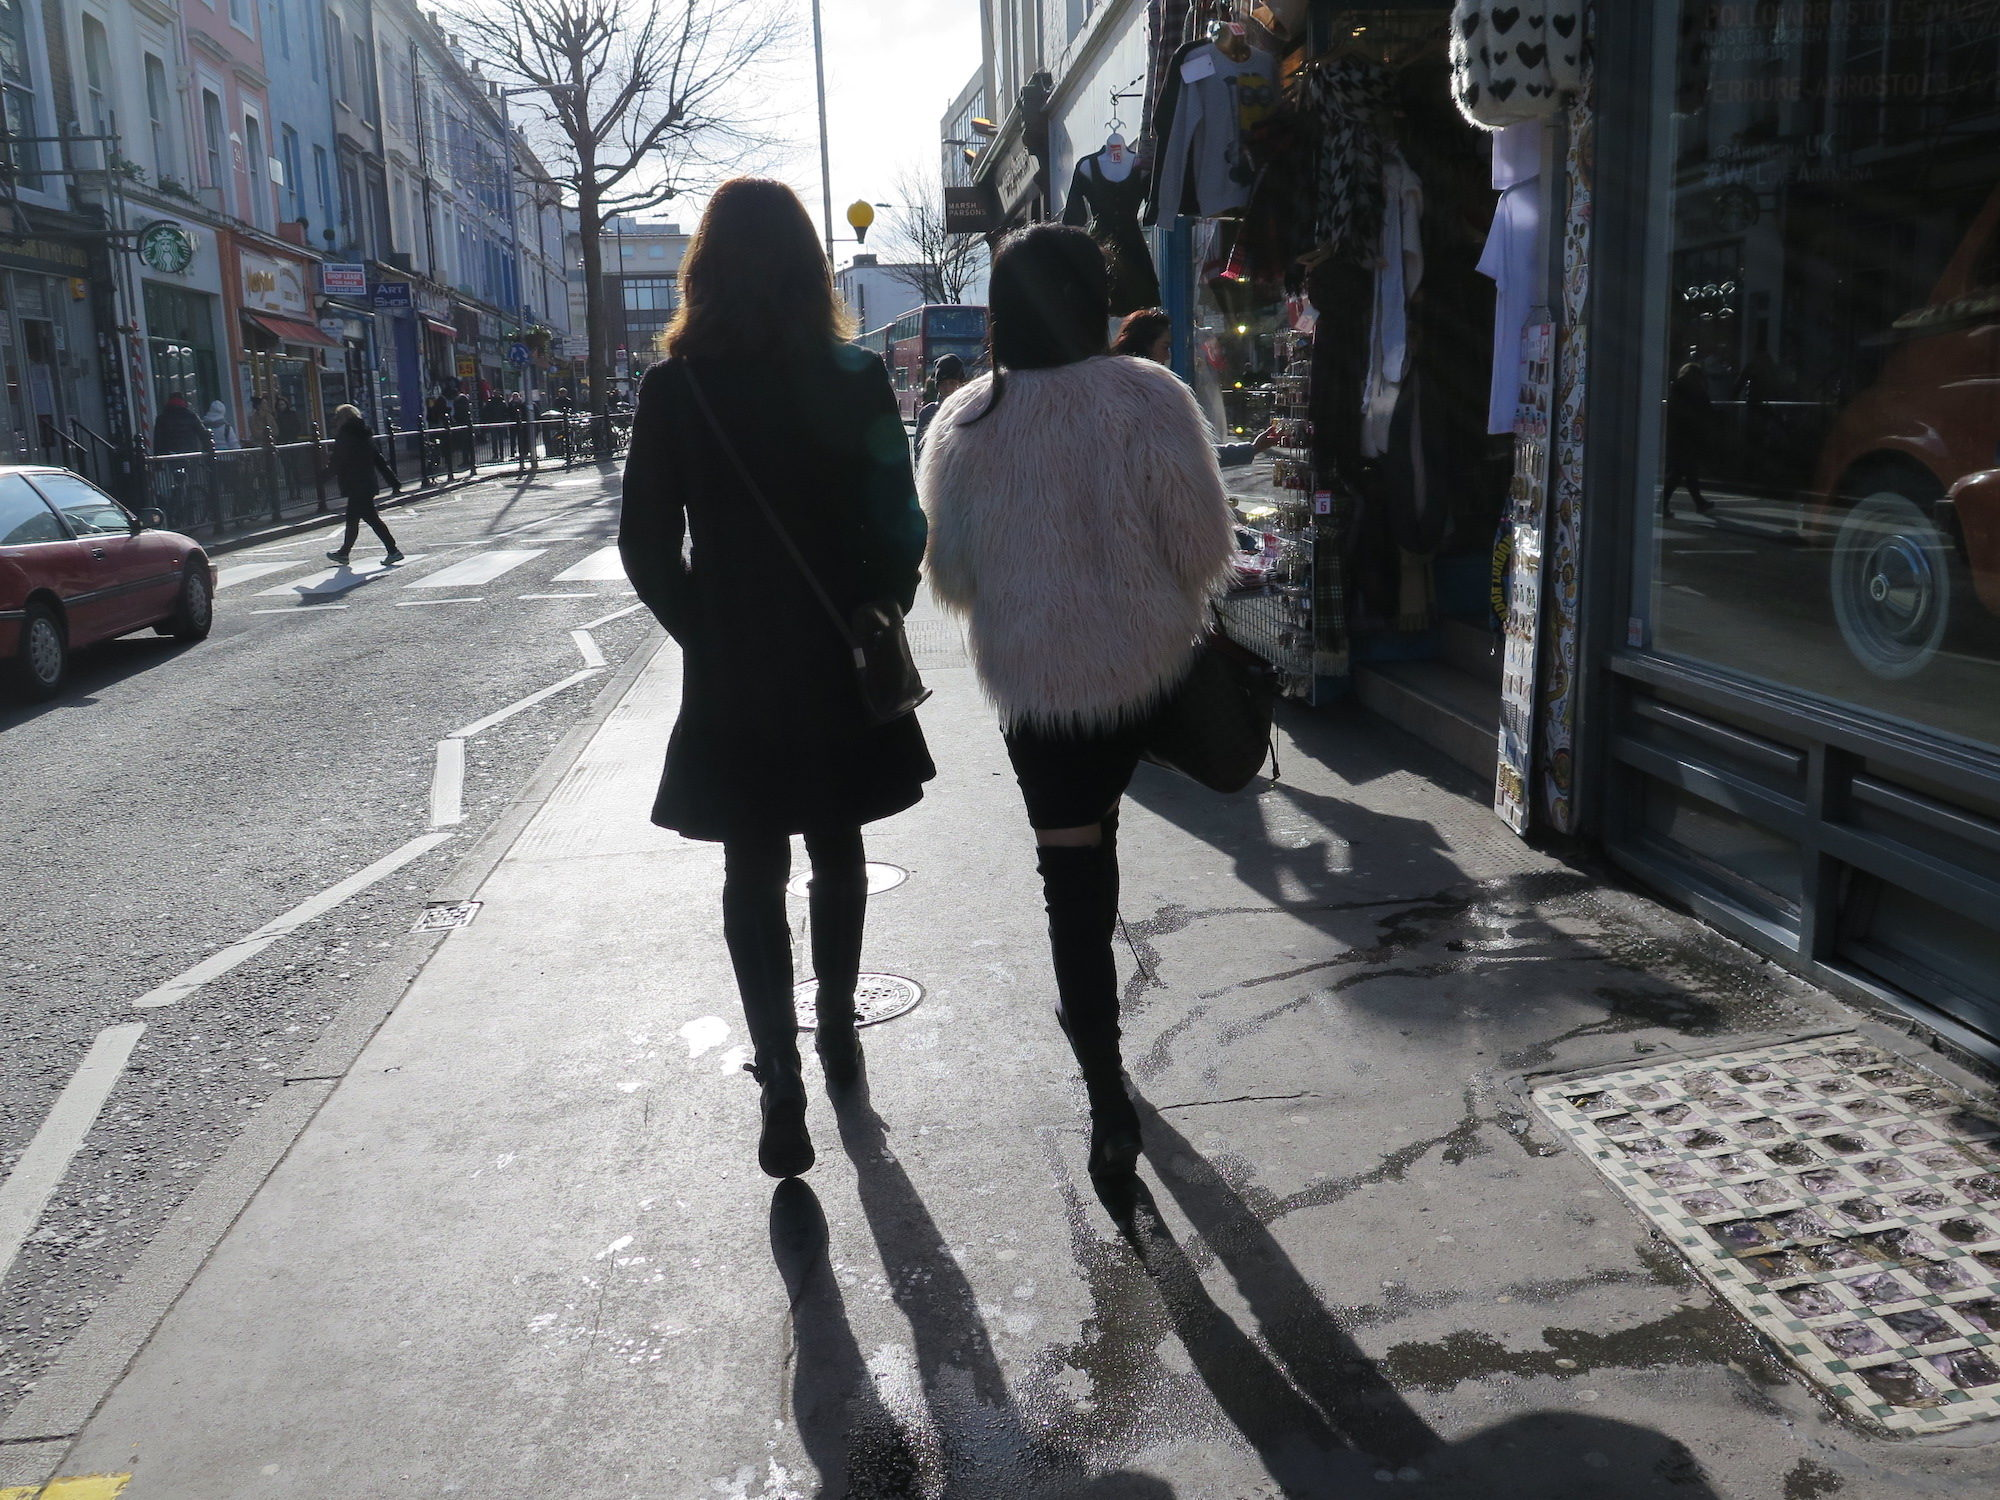 Two girls walking along a street in the London sunshine, one of them wears a fluffy pink jacket.